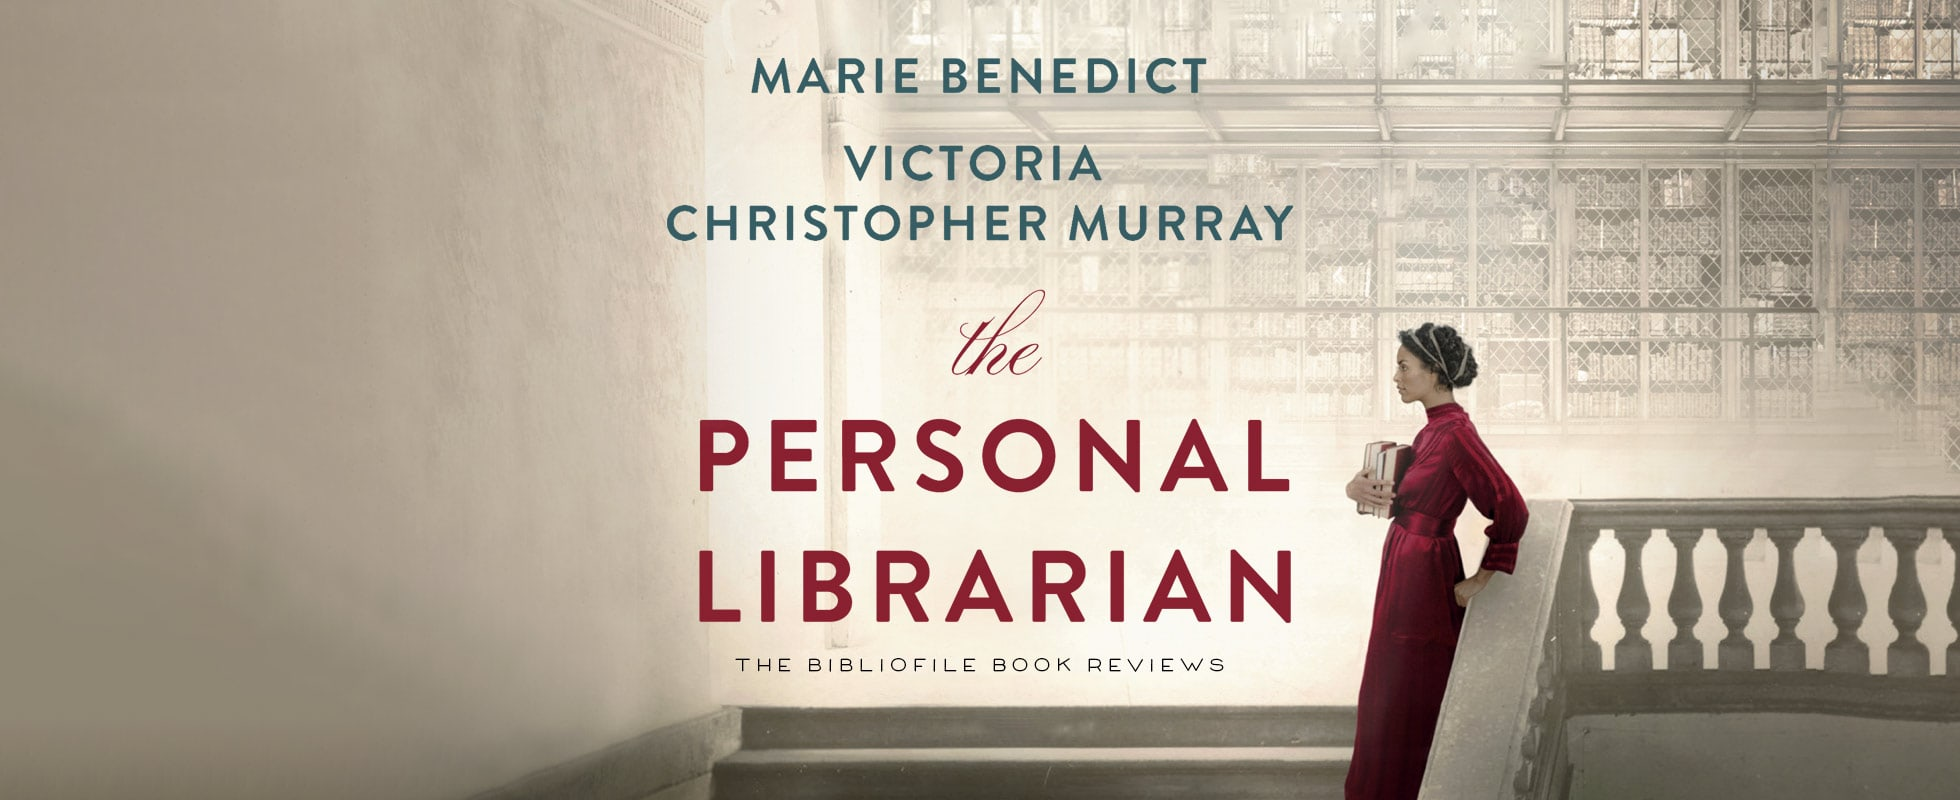 the personal librarian by marie benedict and victoria christopher murray book review plot summary synopsis recap spoilers